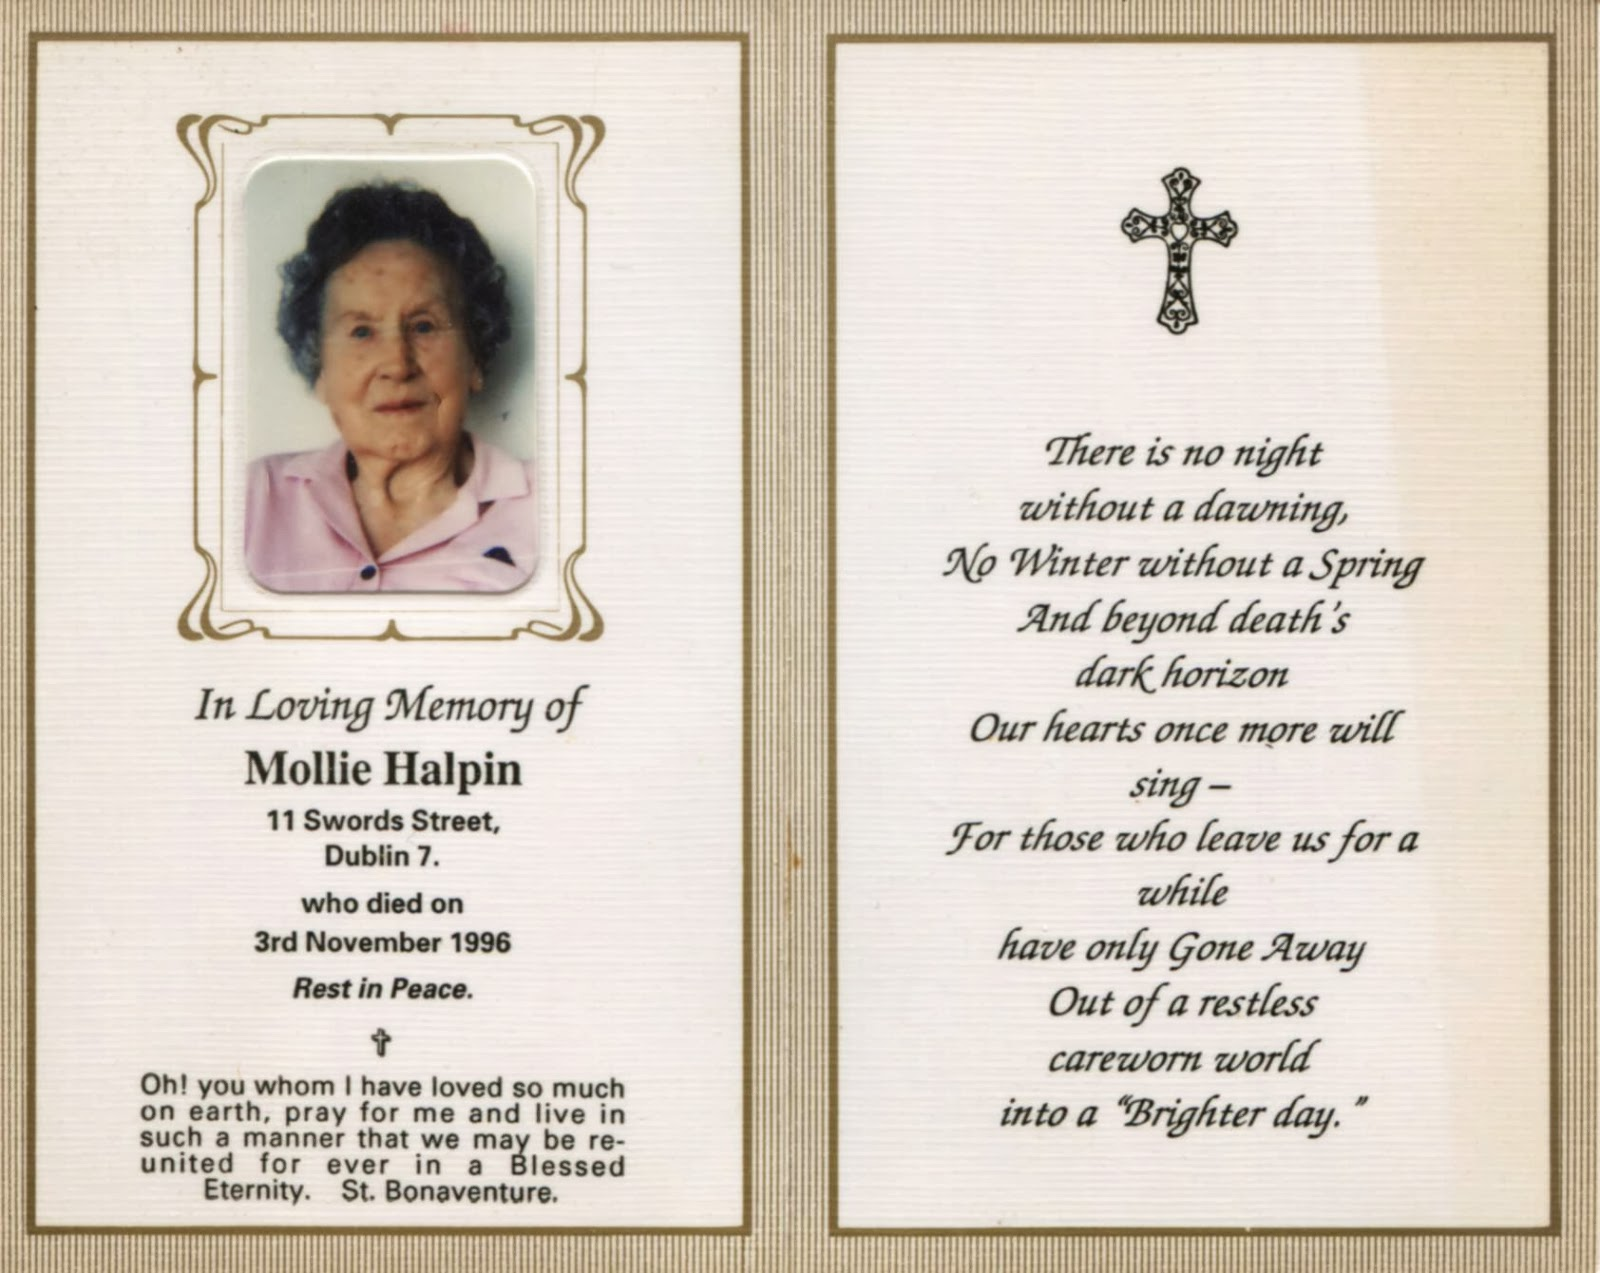 in memoriam cards template - in memoriam quotes for mother quotesgram